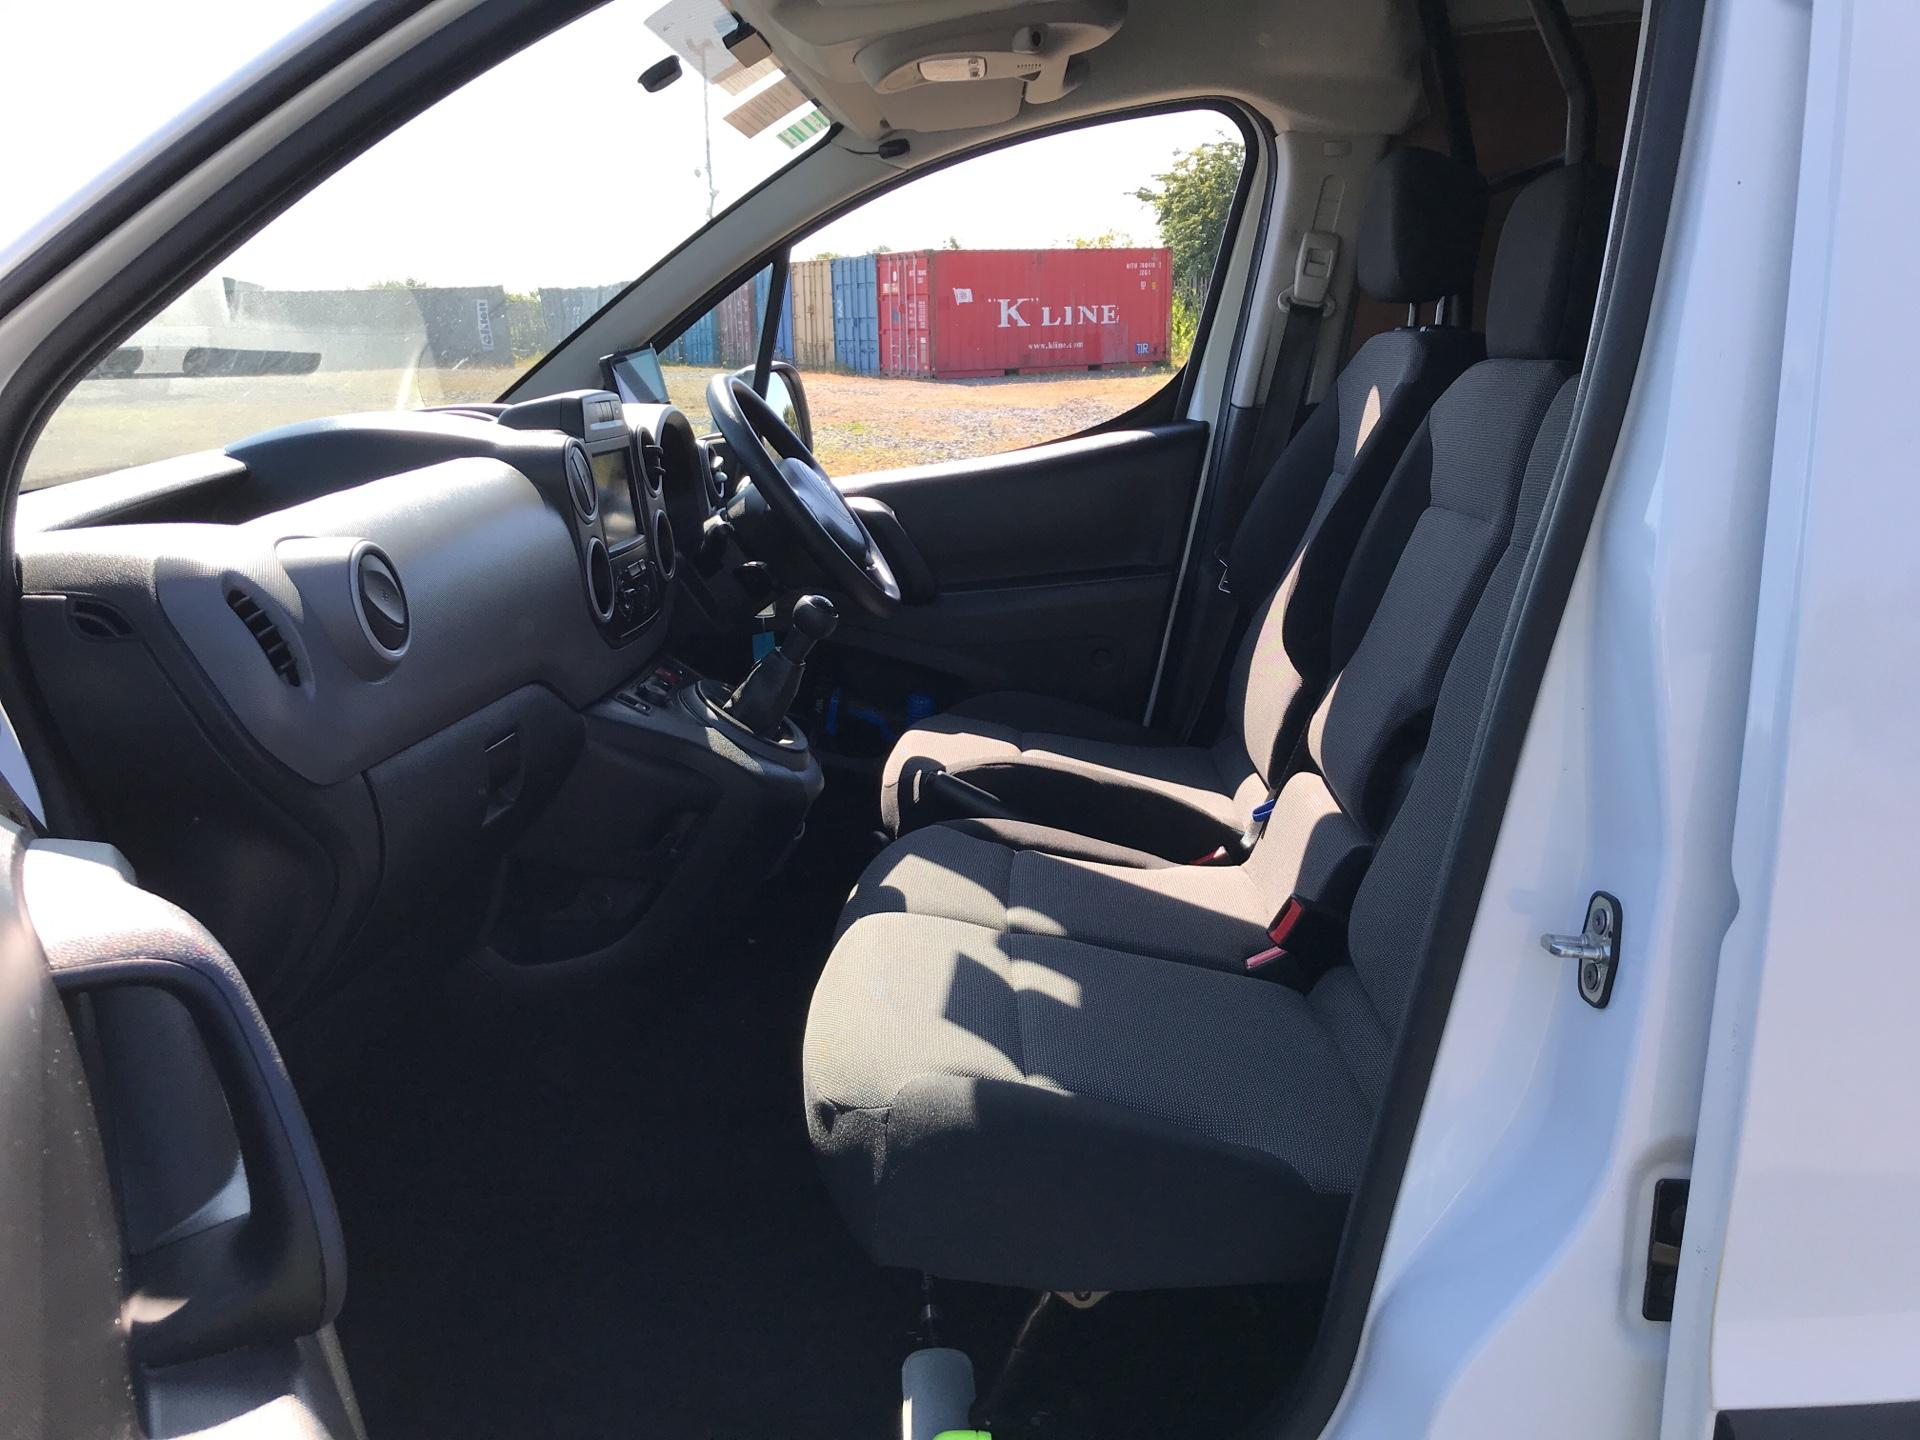 2017 Citroen Berlingo L1 1.6 Bluehdi 625Kg Enterprise 75Ps EURO 4/5 (SB17BZR) Image 14